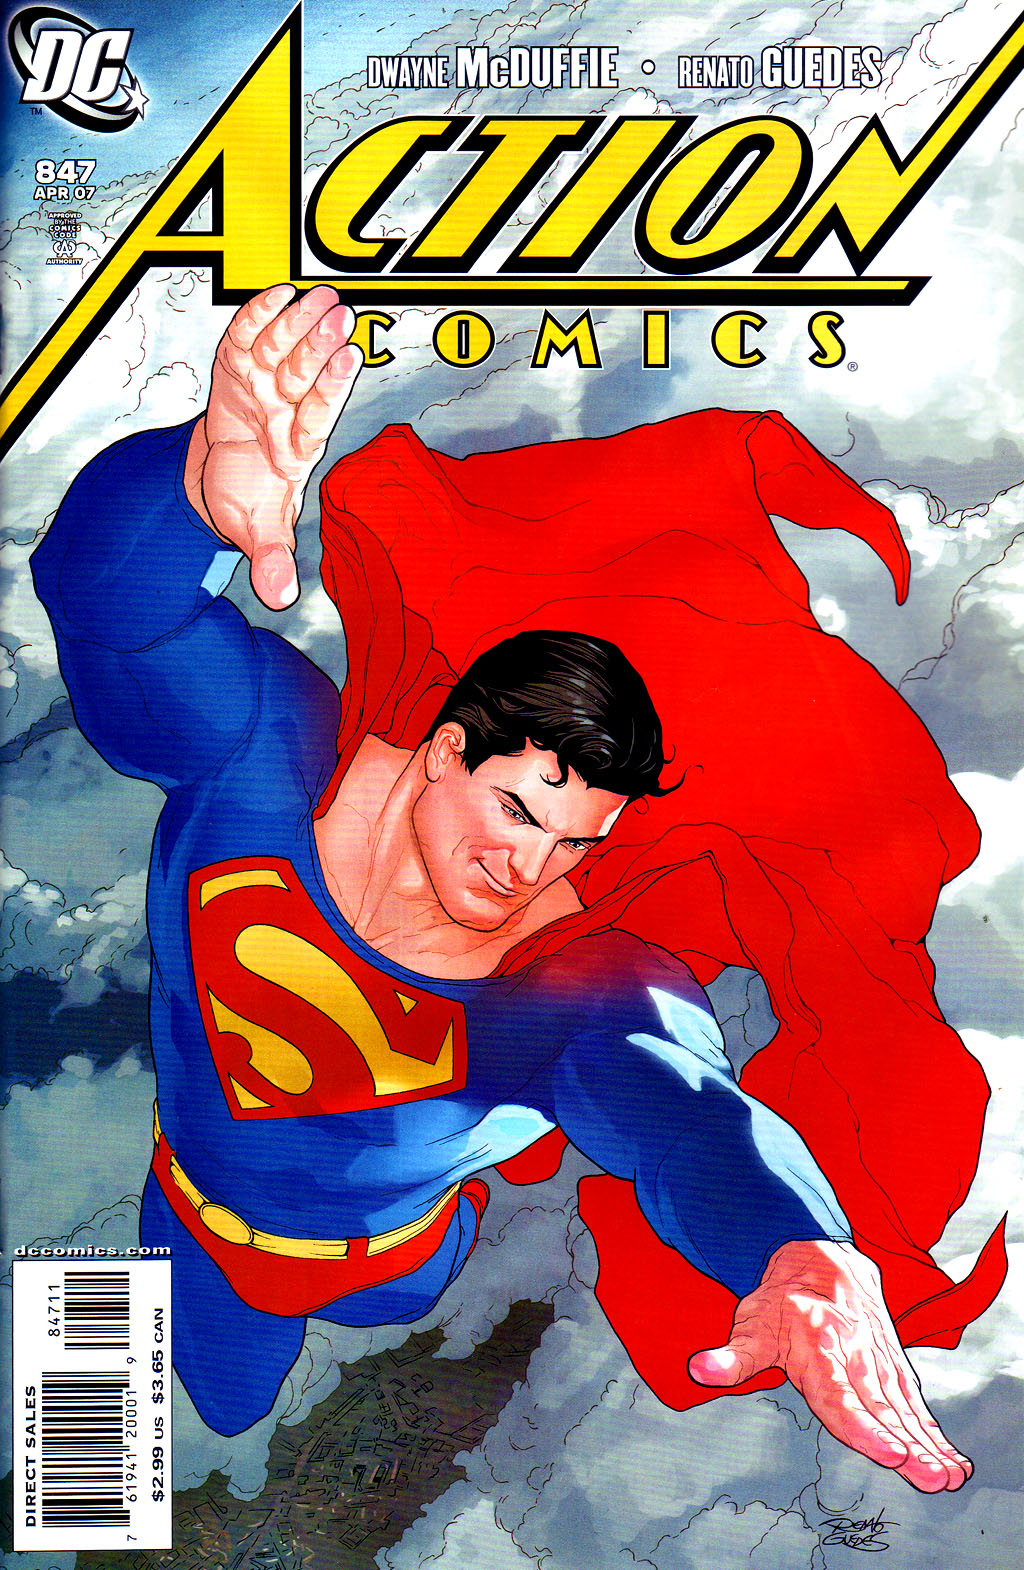 Read online Action Comics (1938) comic -  Issue #847 - 1